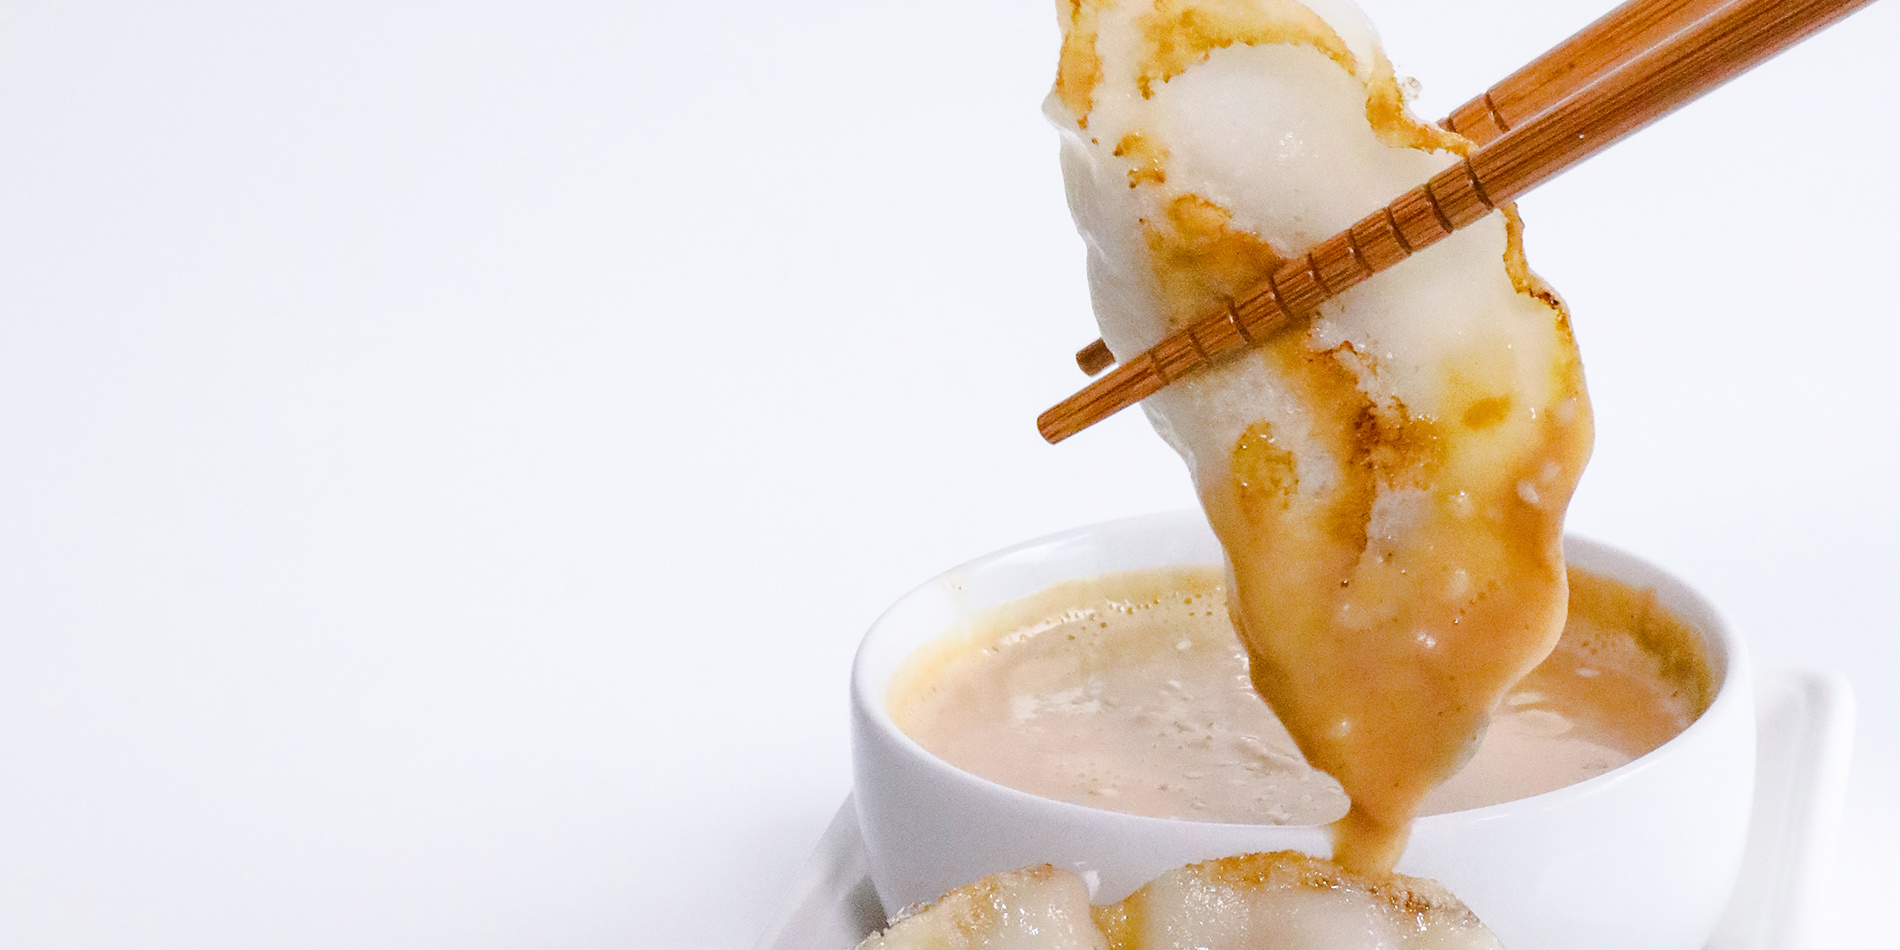 Spicy Peanut Sauce used to dip dumplings being held with brown wooden chopsticks on a white background